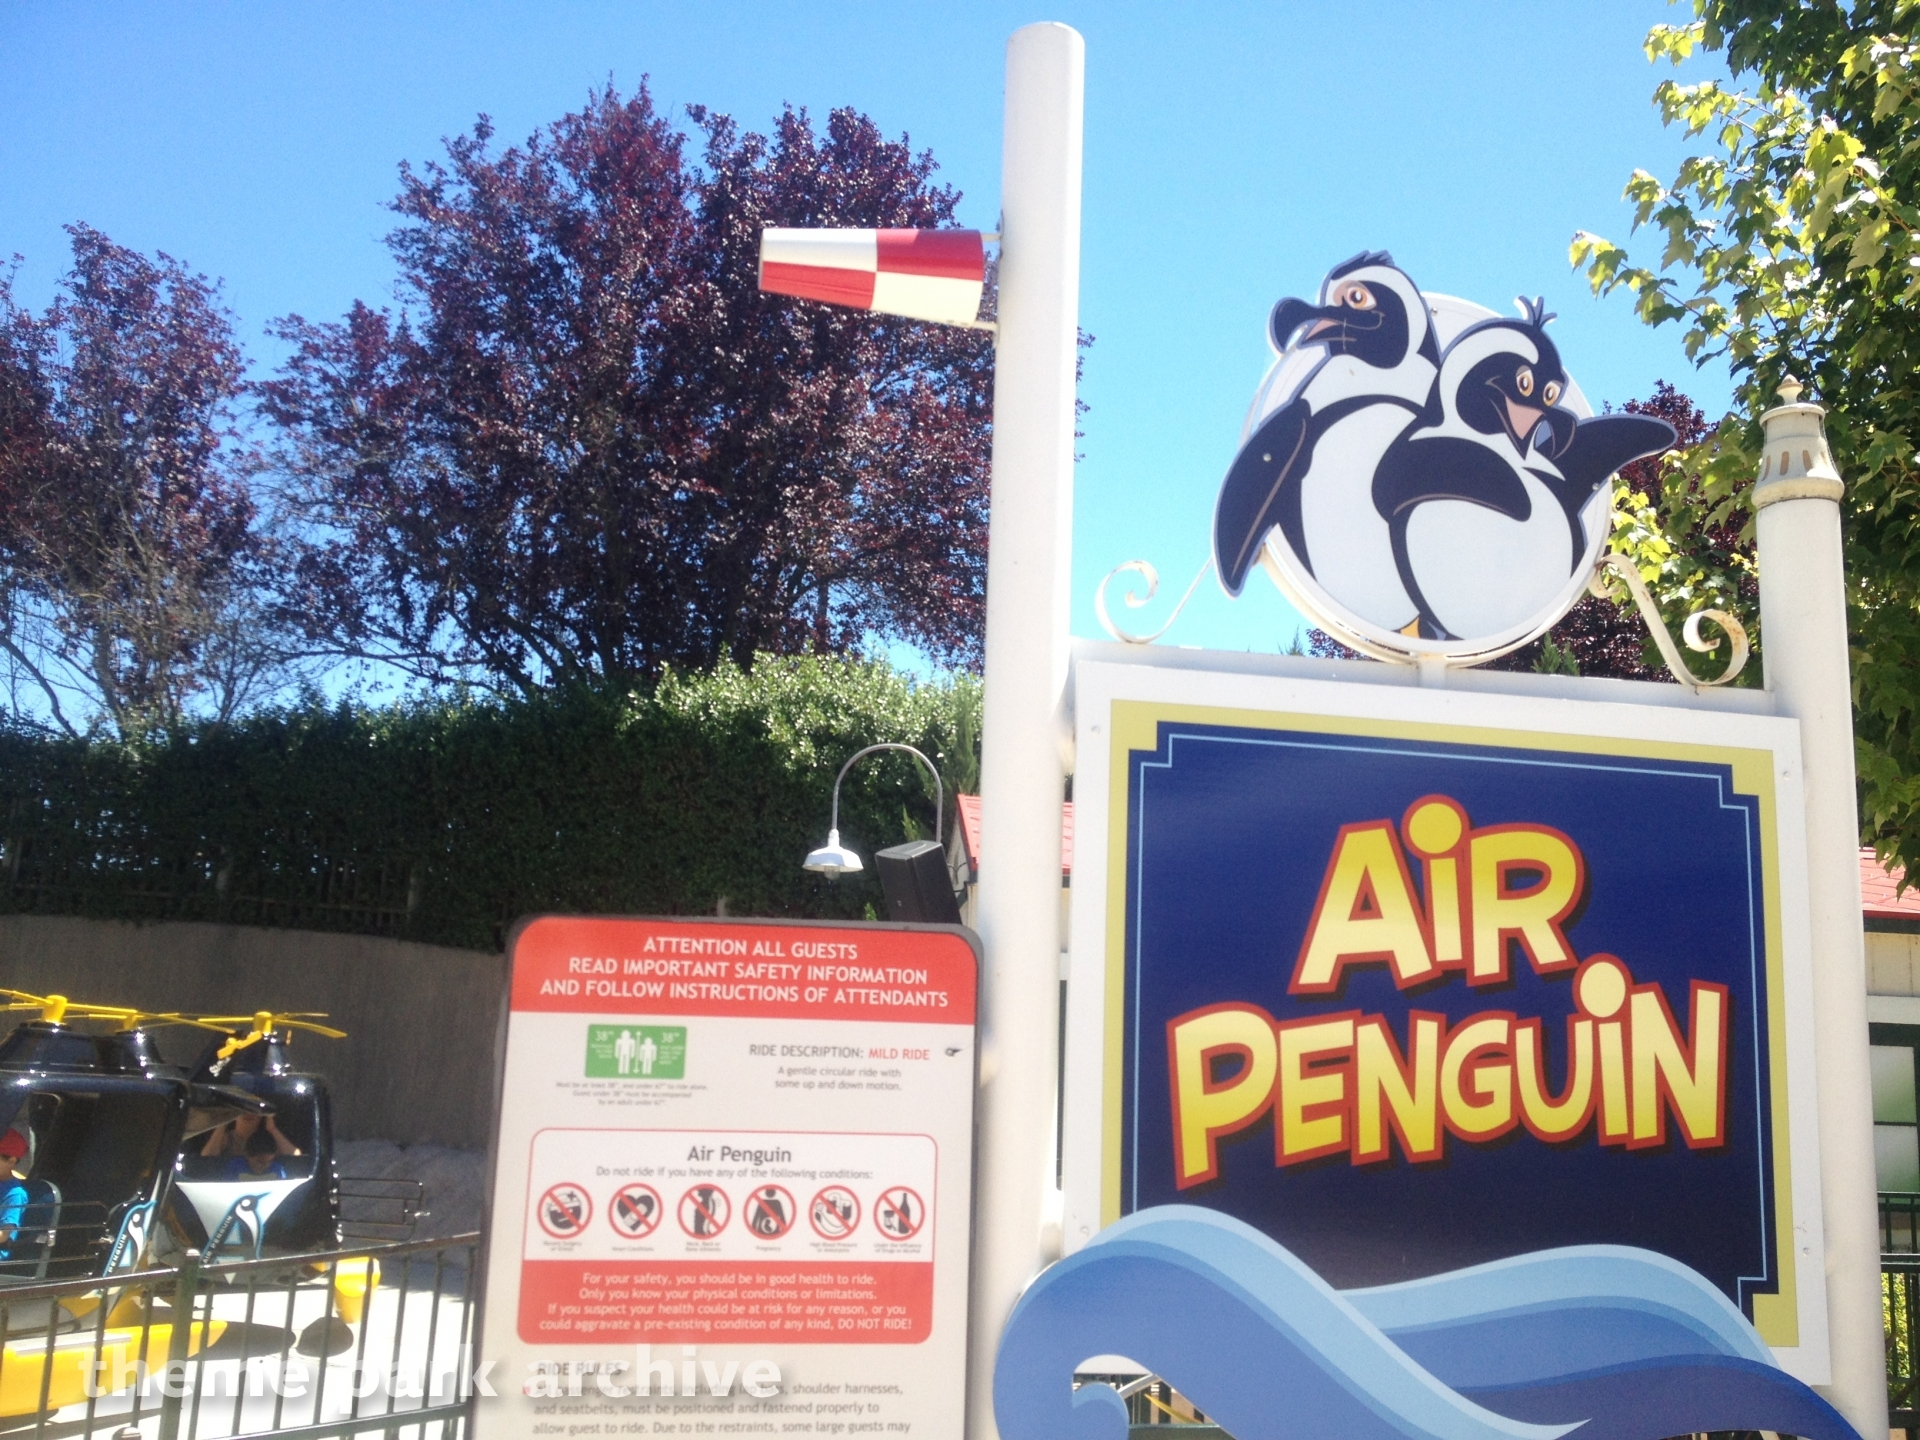 Air Penguin at Six Flags Discovery Kingdom